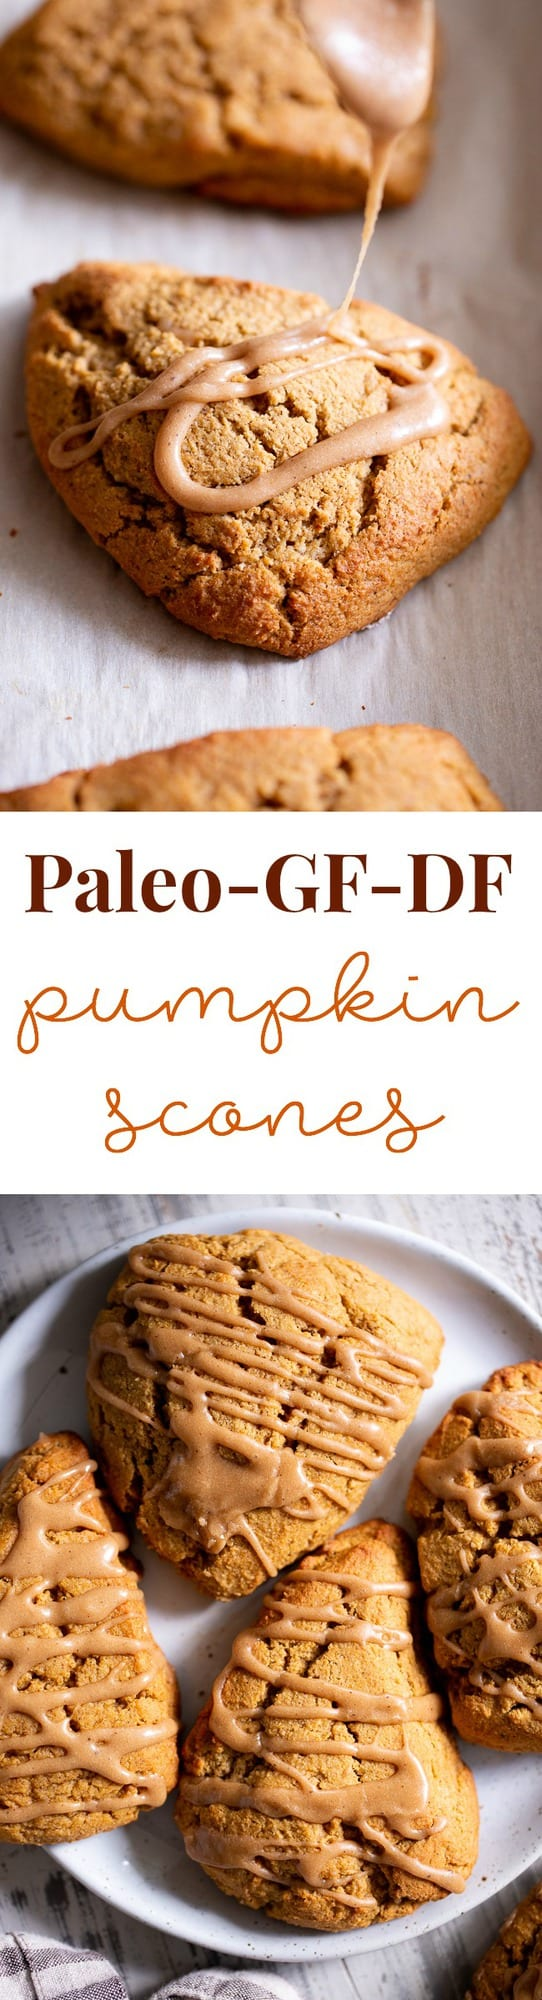 These paleo pumpkin scones are tender and full of pumpkin spice flavor!  Serve them warm topped with a pumpkin spice drizzle for a special (healthier!) treat this fall.  Gluten free and paleo with dairy-free options.  Paleo baking. Paleo desserts. Paleo scones. Paleo Pumpkin recipes.